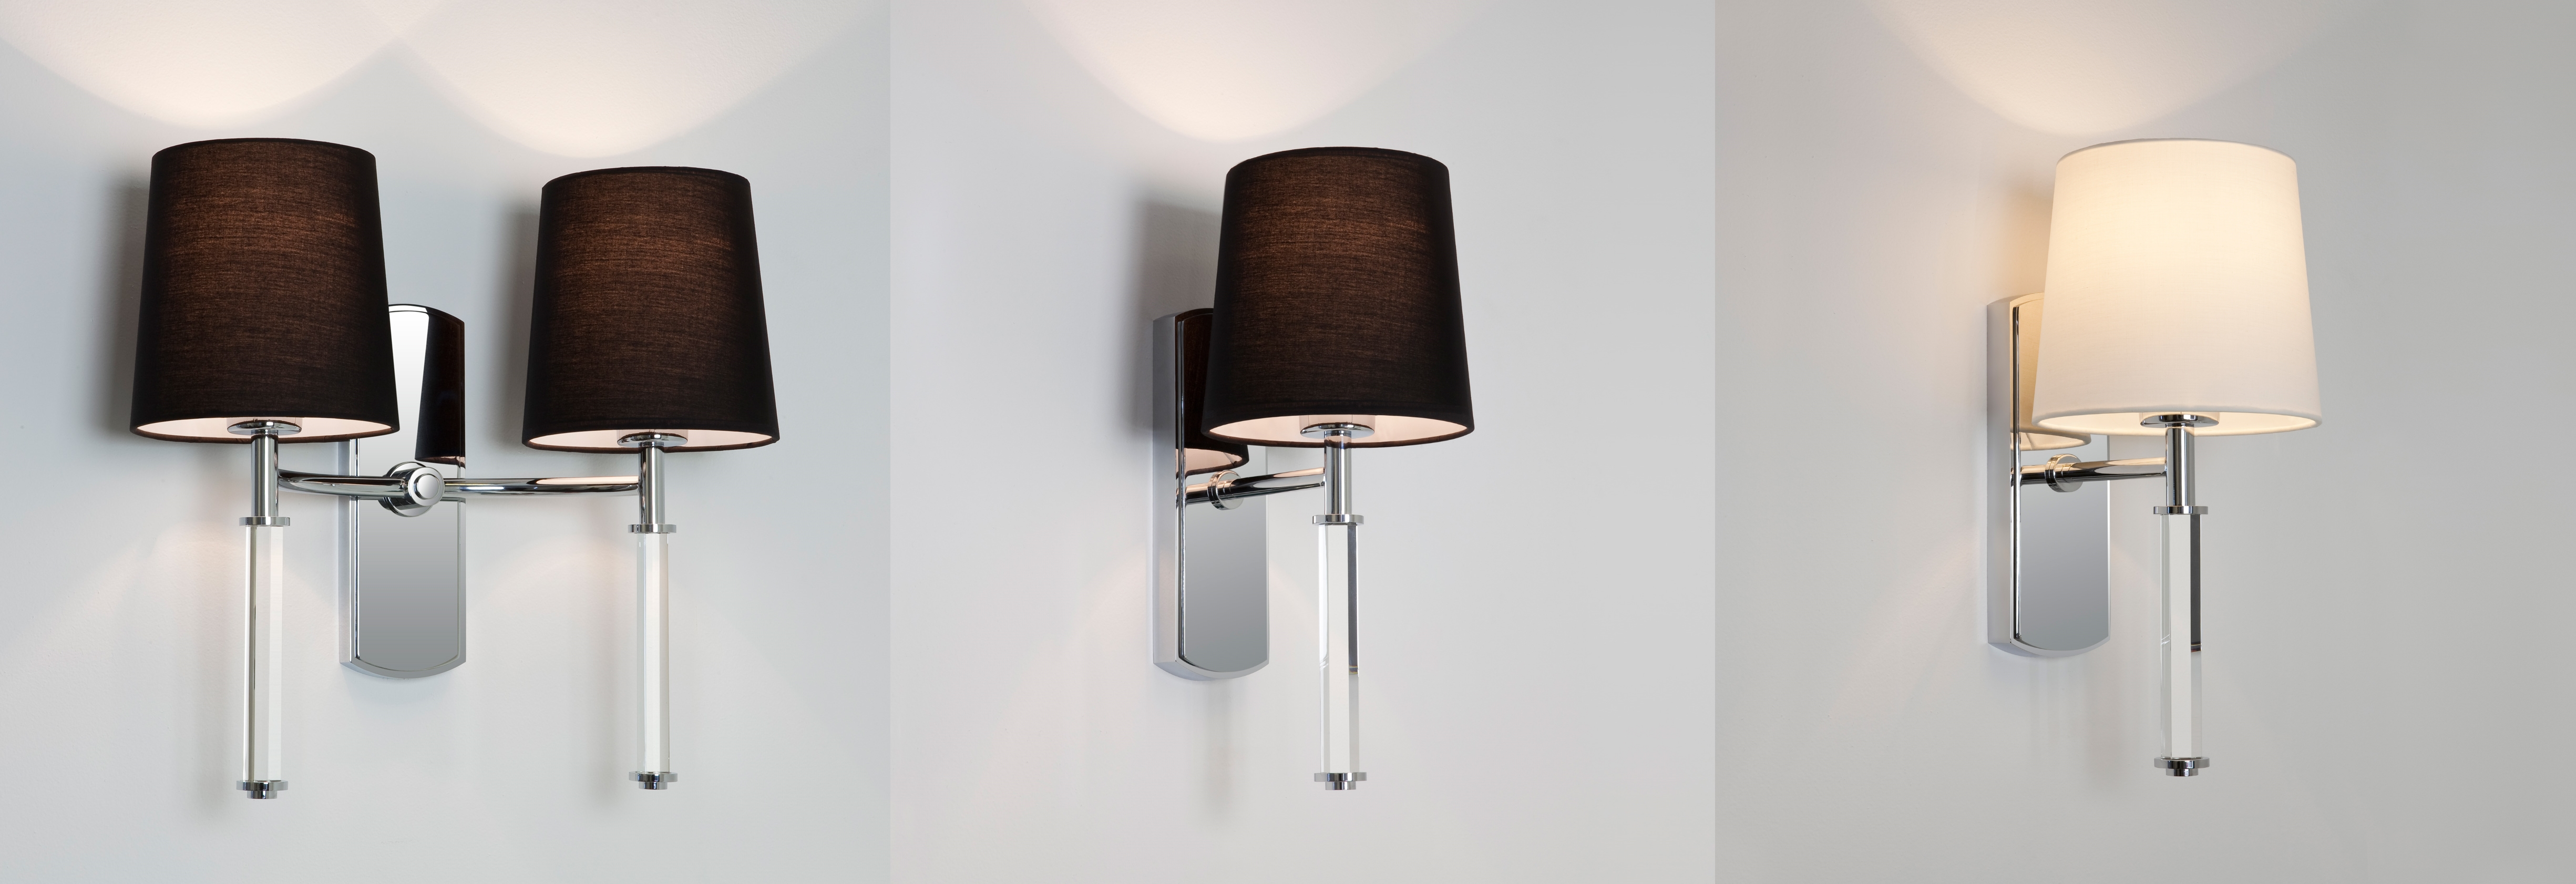 Astro delphi single or twin wall light lampshade 60w e27 polished sentinel astro delphi single or twin wall light lampshade 60w e27 polished chrome aloadofball Image collections